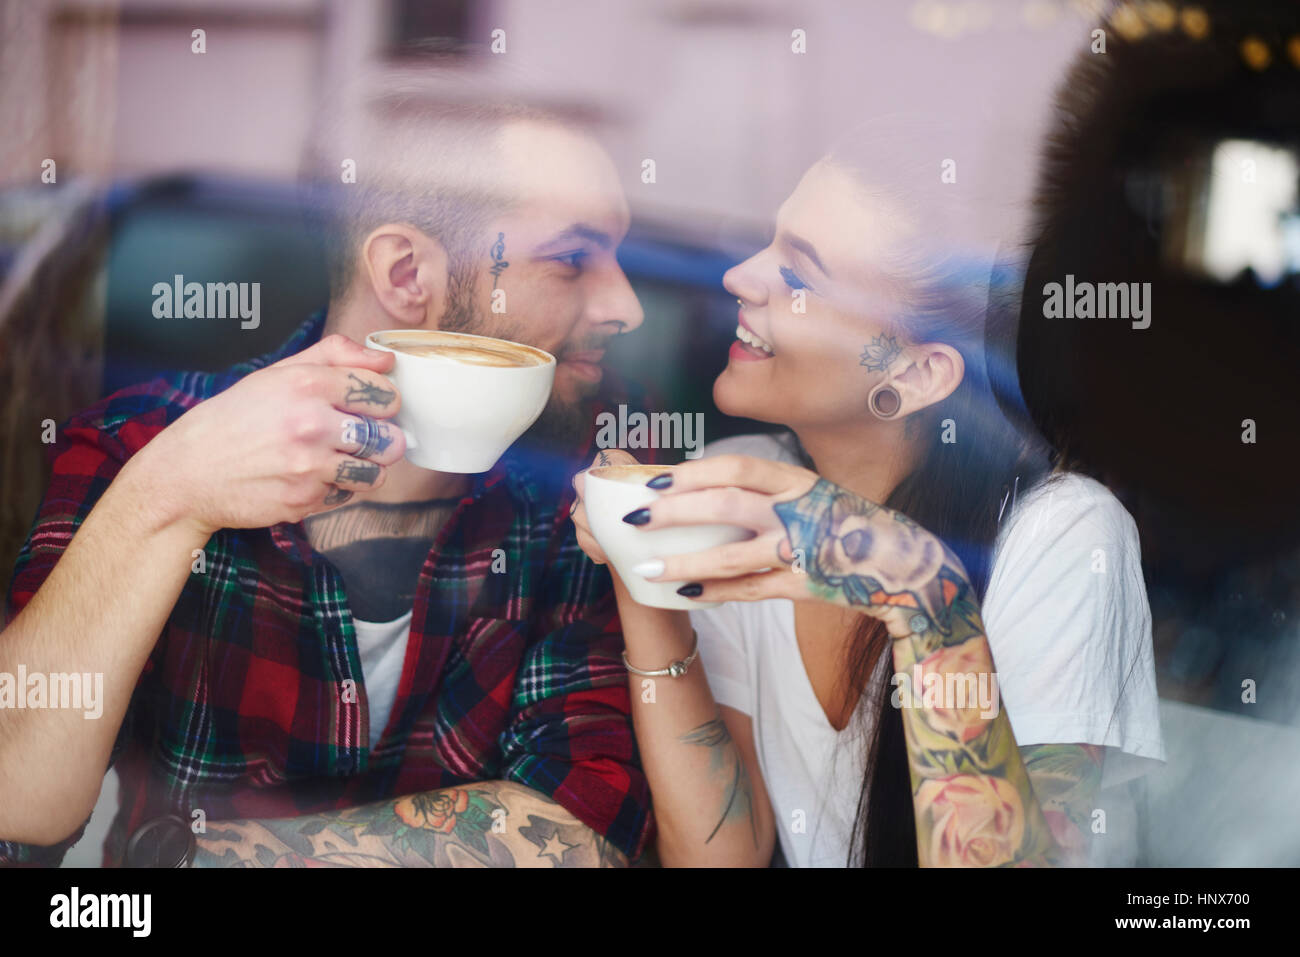 Voir à travers la vitre du couple dans un café face à face smiling Photo Stock